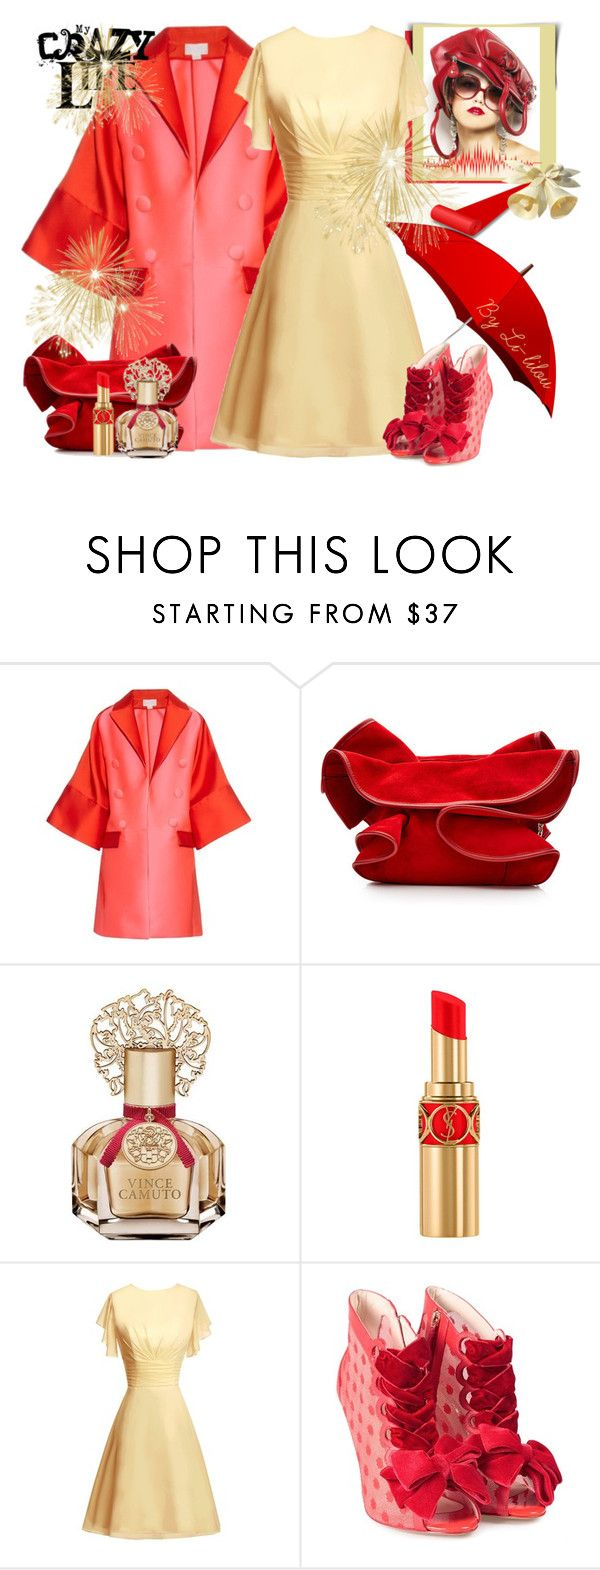 """My Crazy Life!"" by li-lilou ❤ liked on Polyvore featuring Antonio Berardi, Nina Ricci, Vince Camuto, Yves Saint Laurent and Sophia Webster"